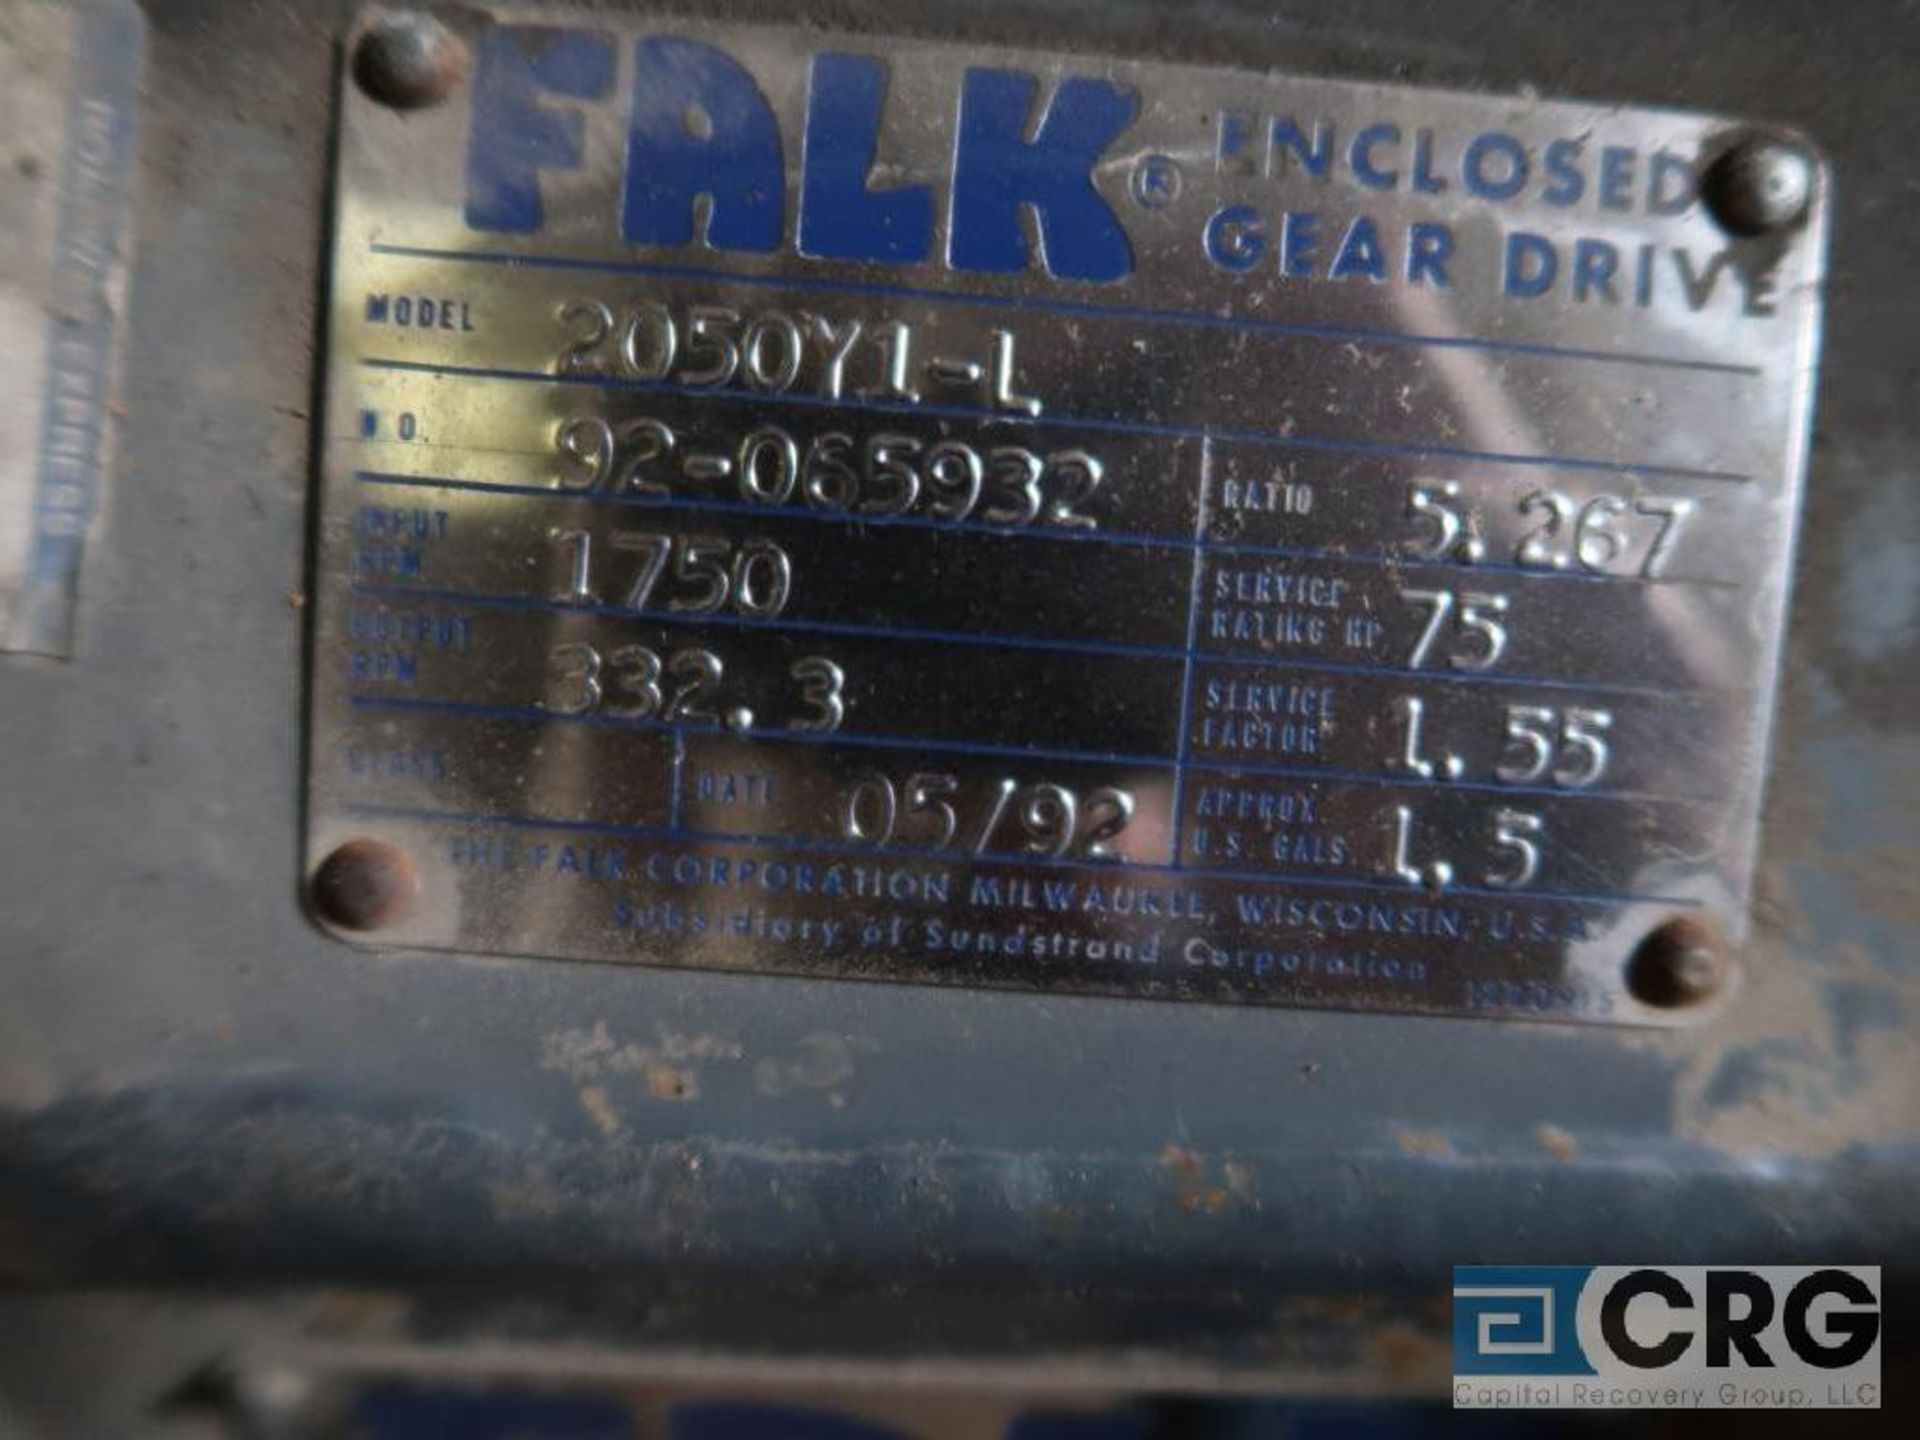 Falk 2050 Y1L gear drive, ratio 5.267, input RPM 1,750, output RPM 332.3, service rate HP. 75, s/n - Image 3 of 3